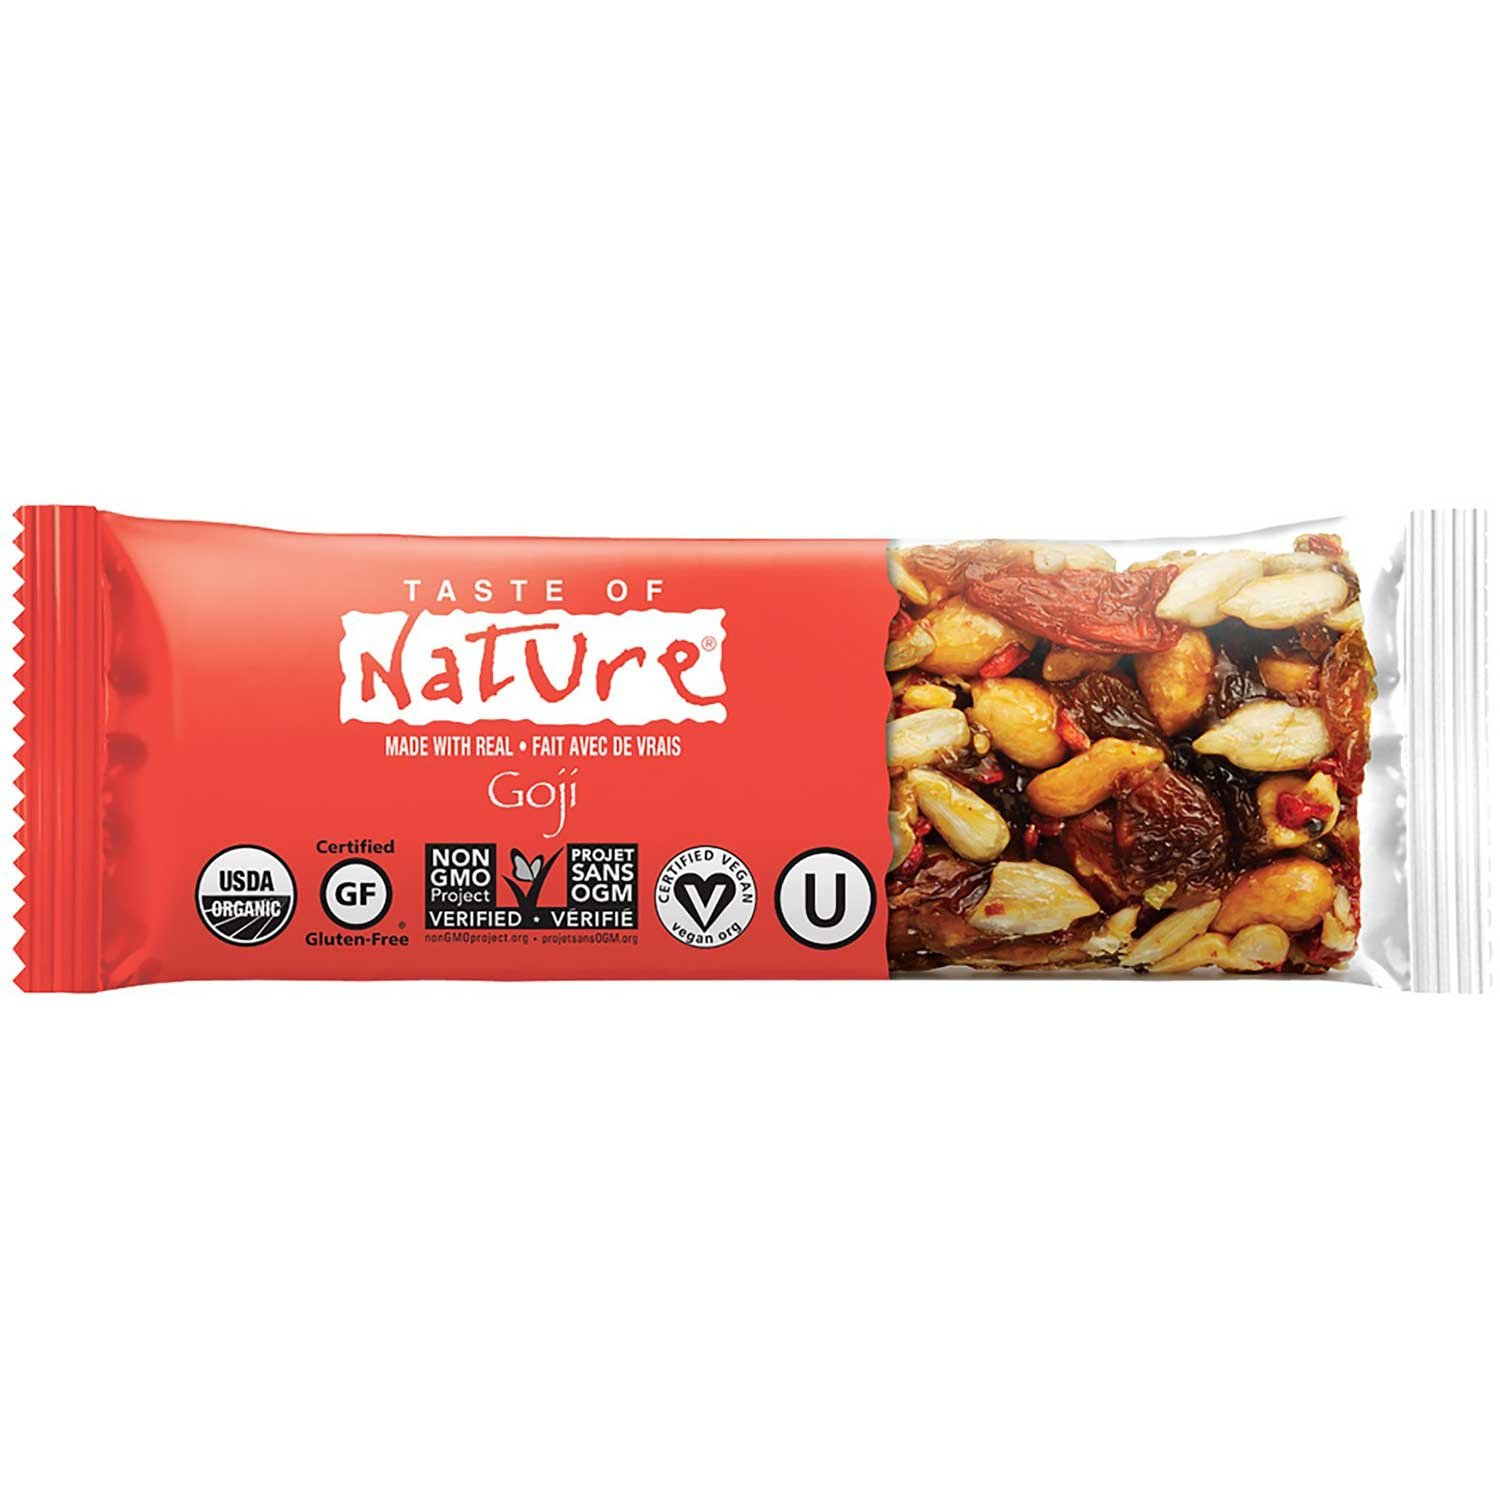 Taste of Nature Organic Food Bar - Goji, 40g